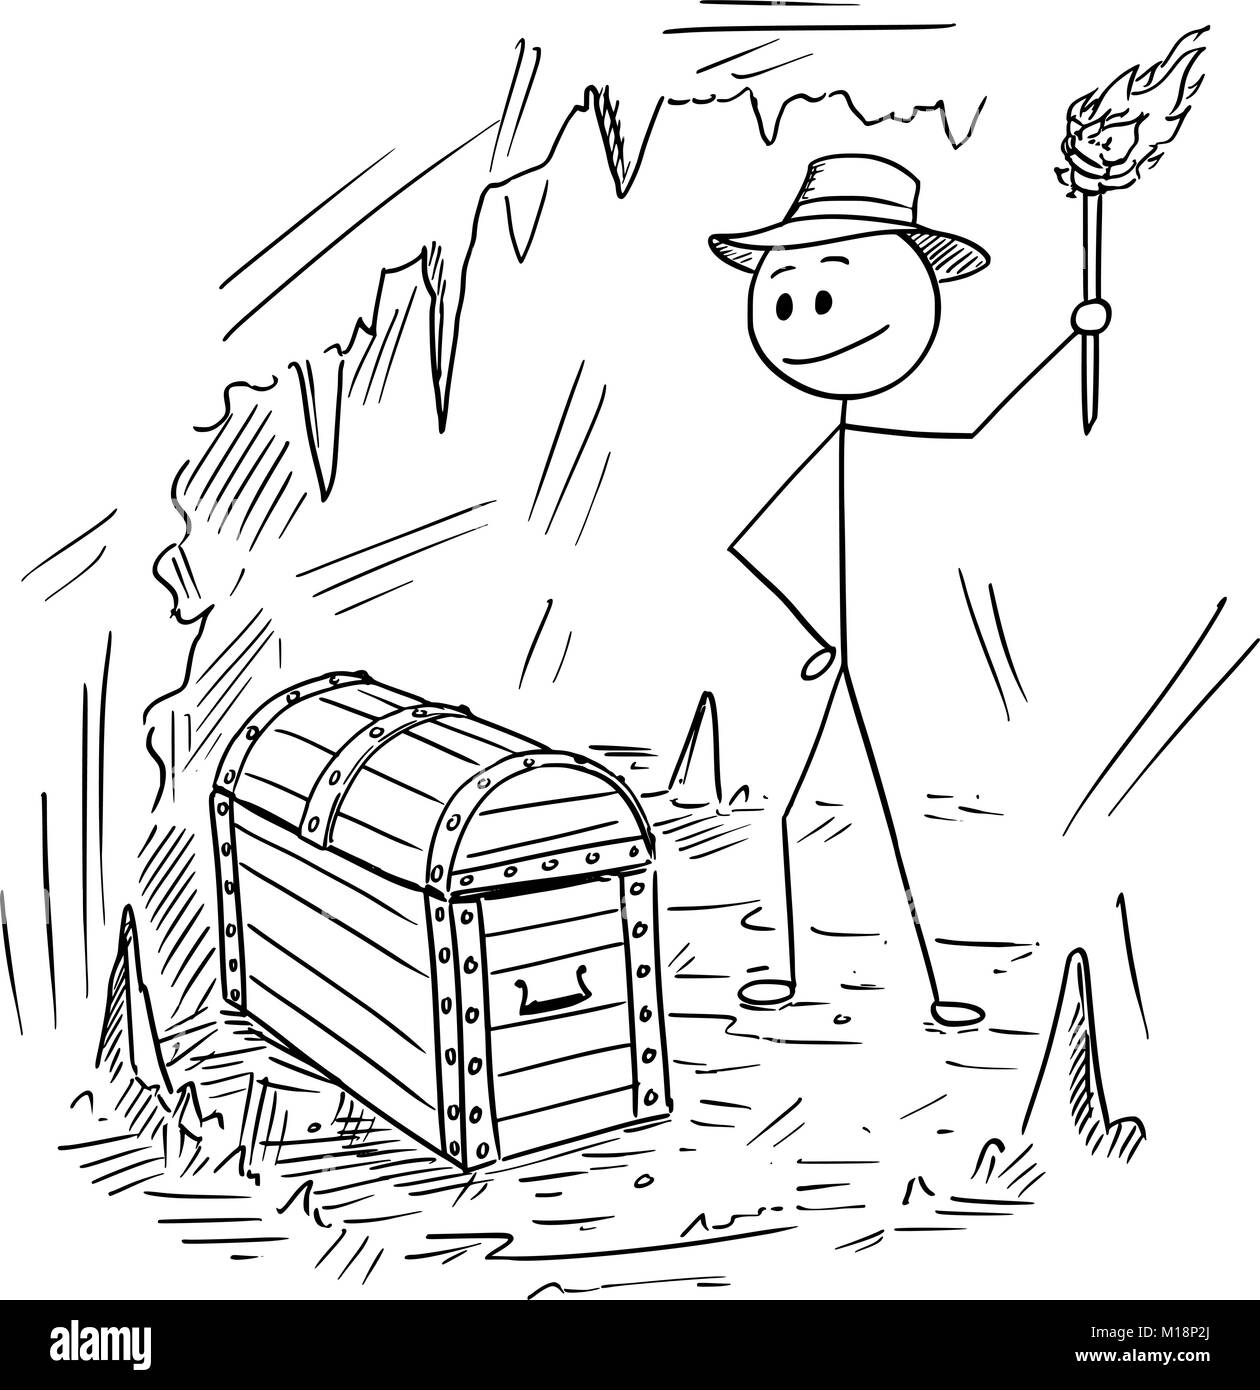 Cartoon of Adventurer Man Who Found a Treasure in Cave - Stock Image